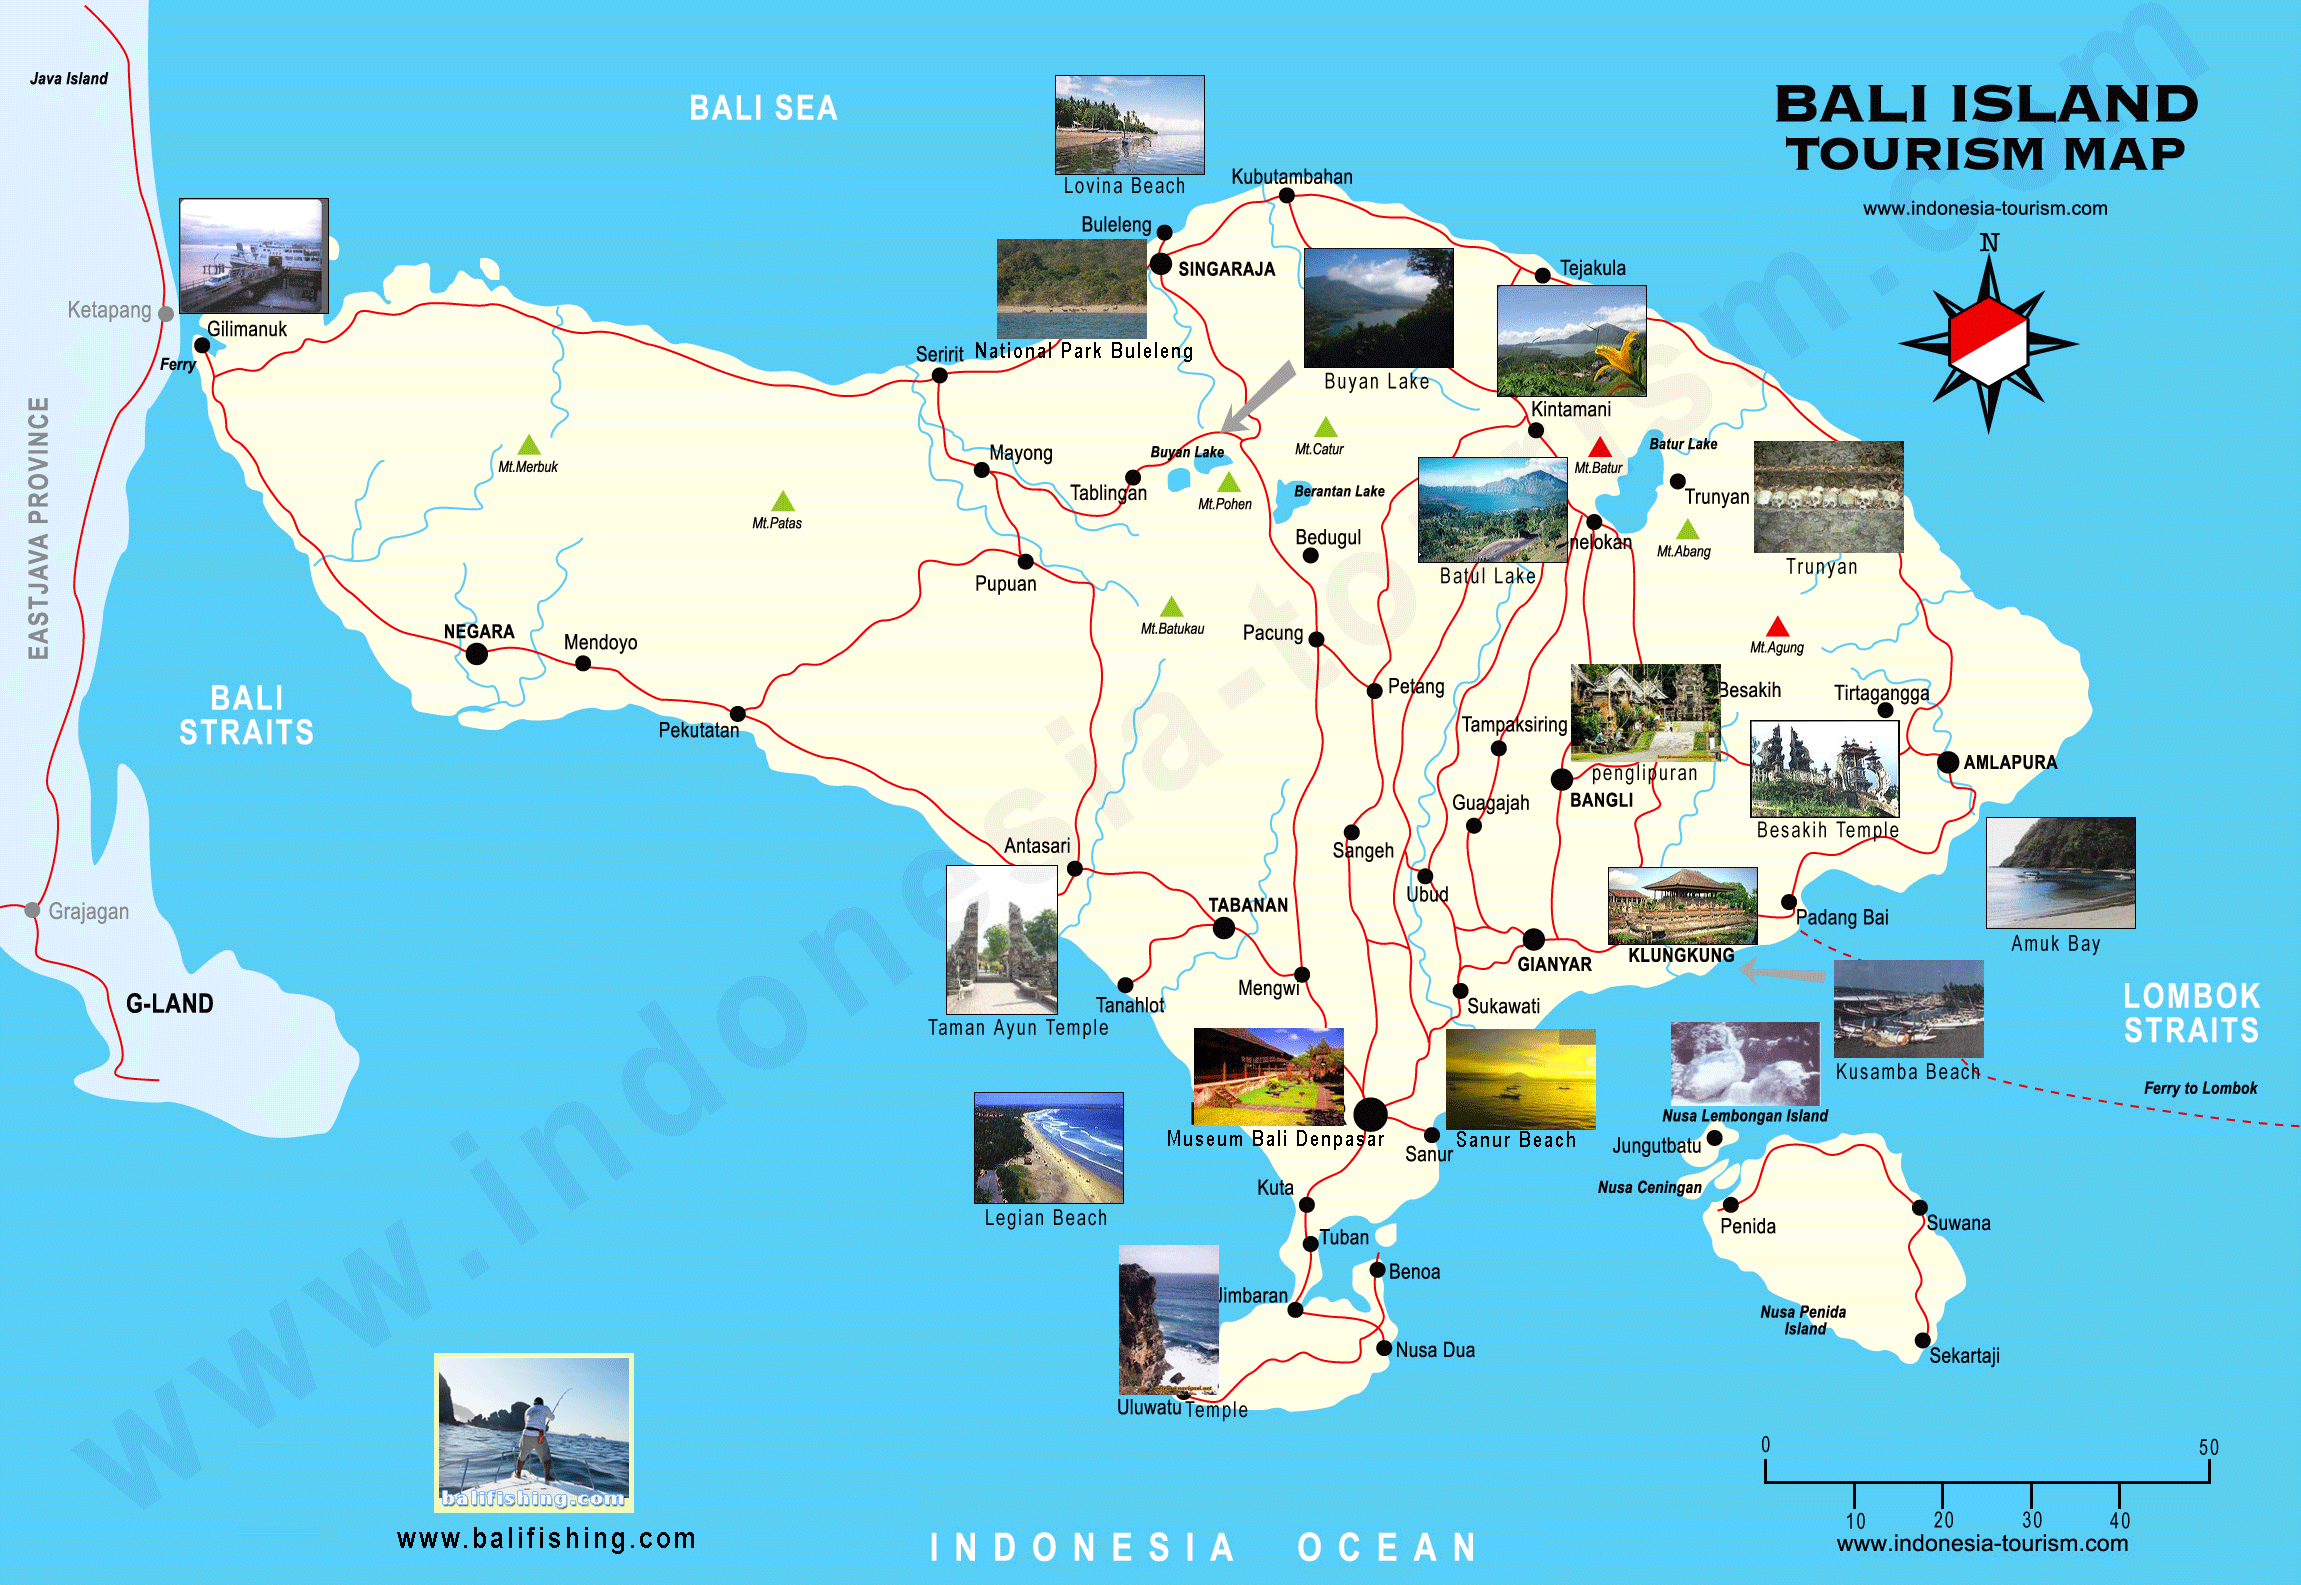 Bali Weather Forecast and Bali Map Info: Detail Bali Indonesia Map for Tourists Guide